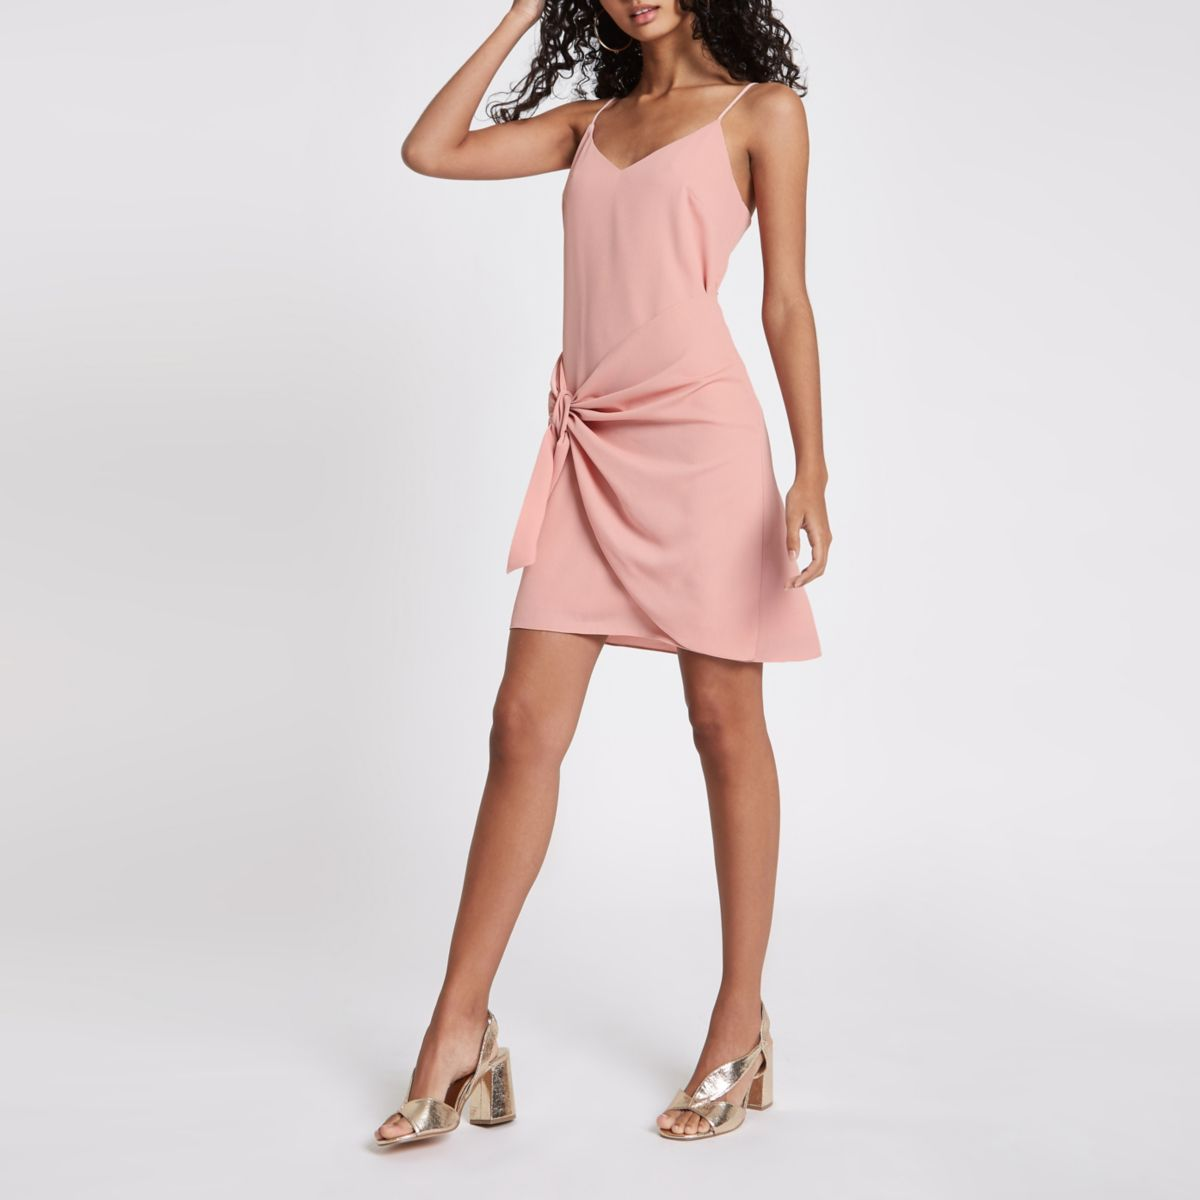 Light pink knot front slip dress